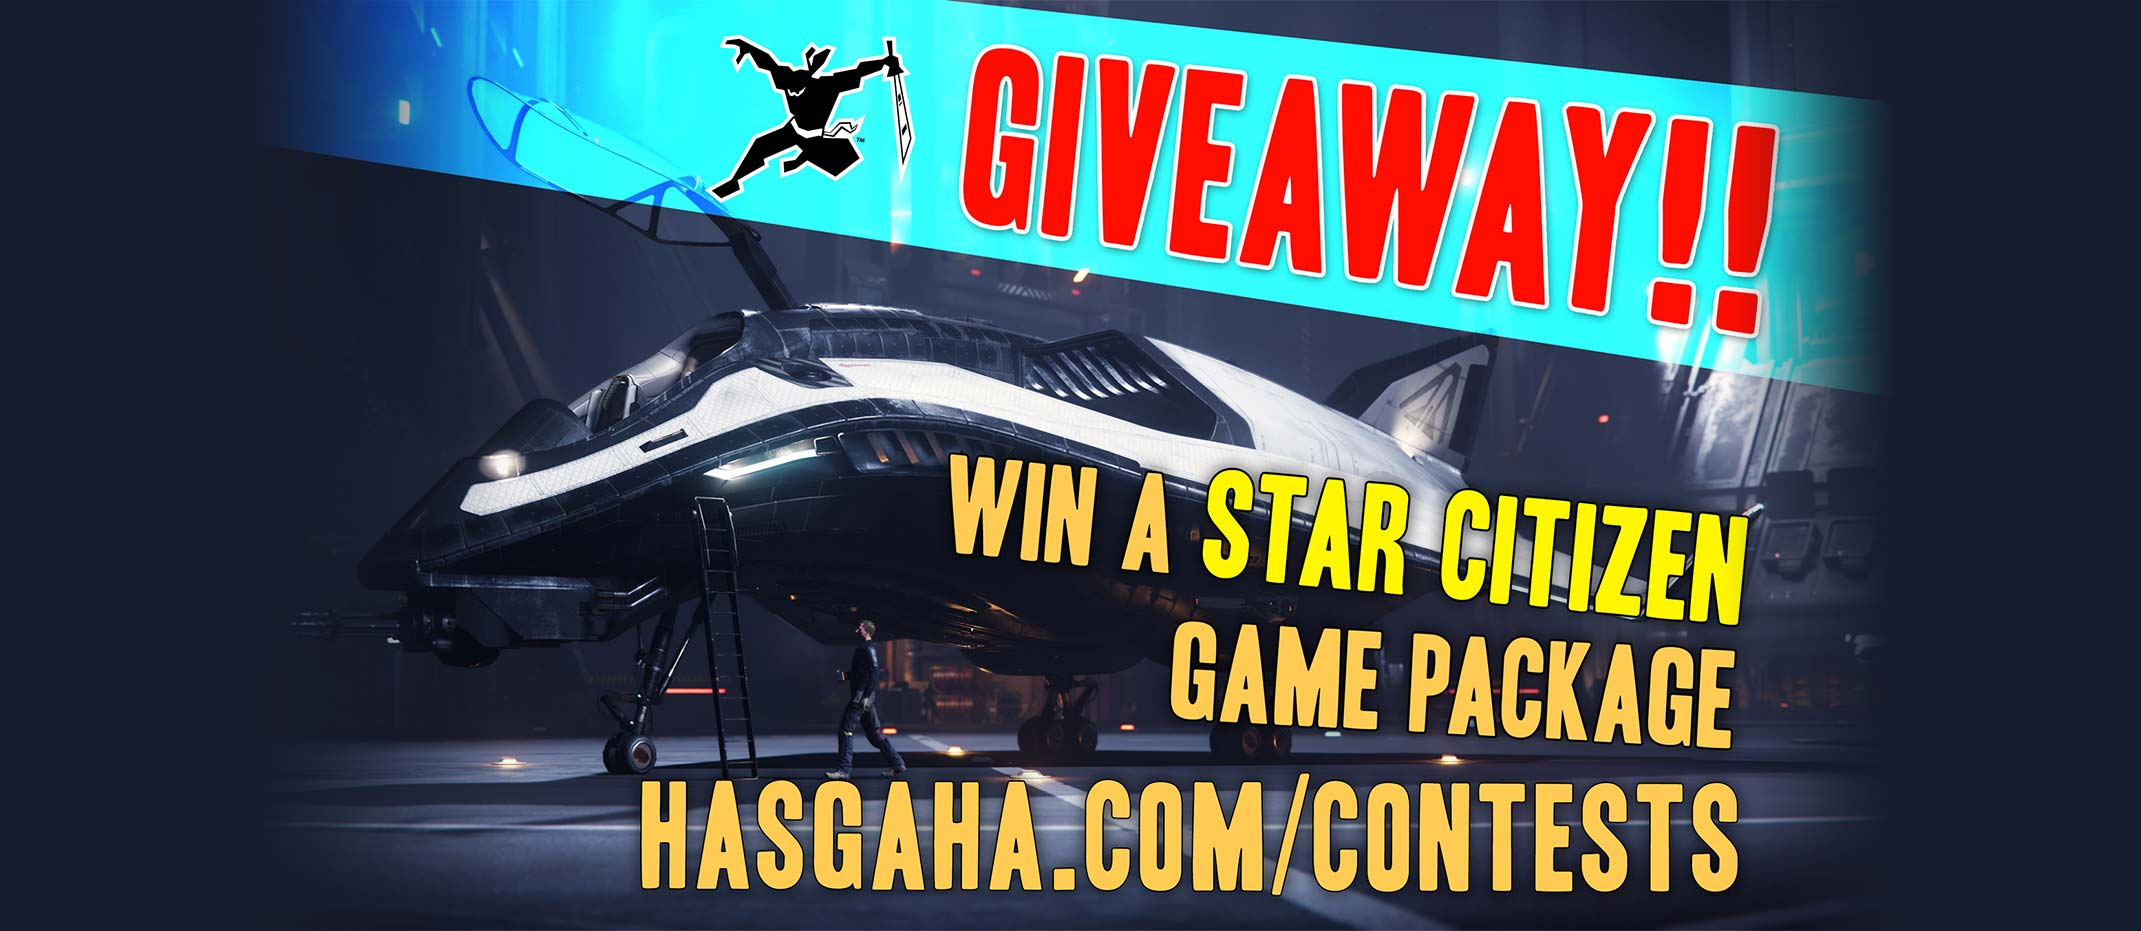 star citizen free giveaway